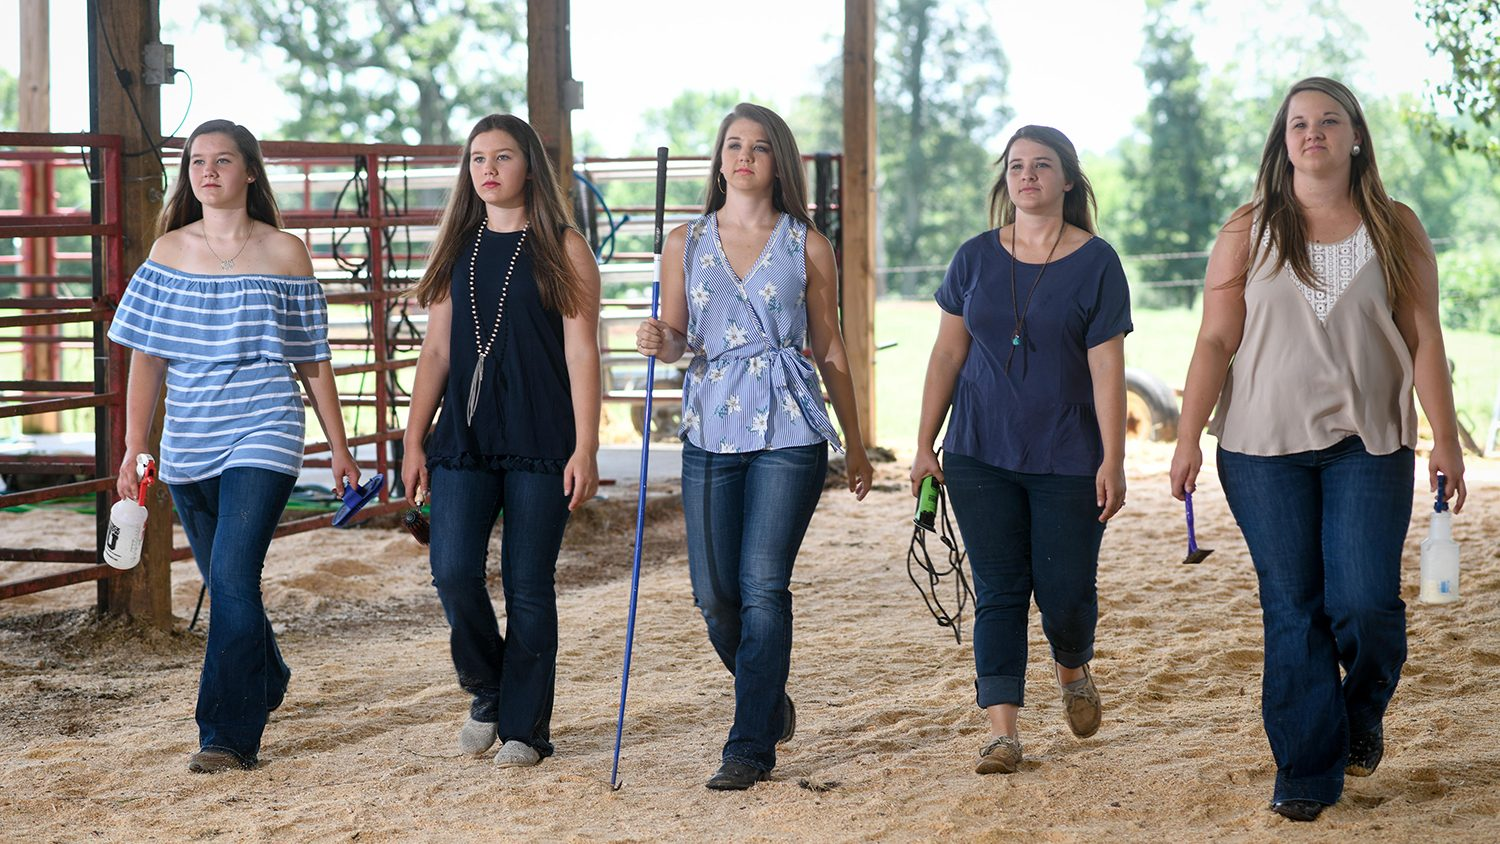 CALS graduates the Harward Sisters have their own cattle business.